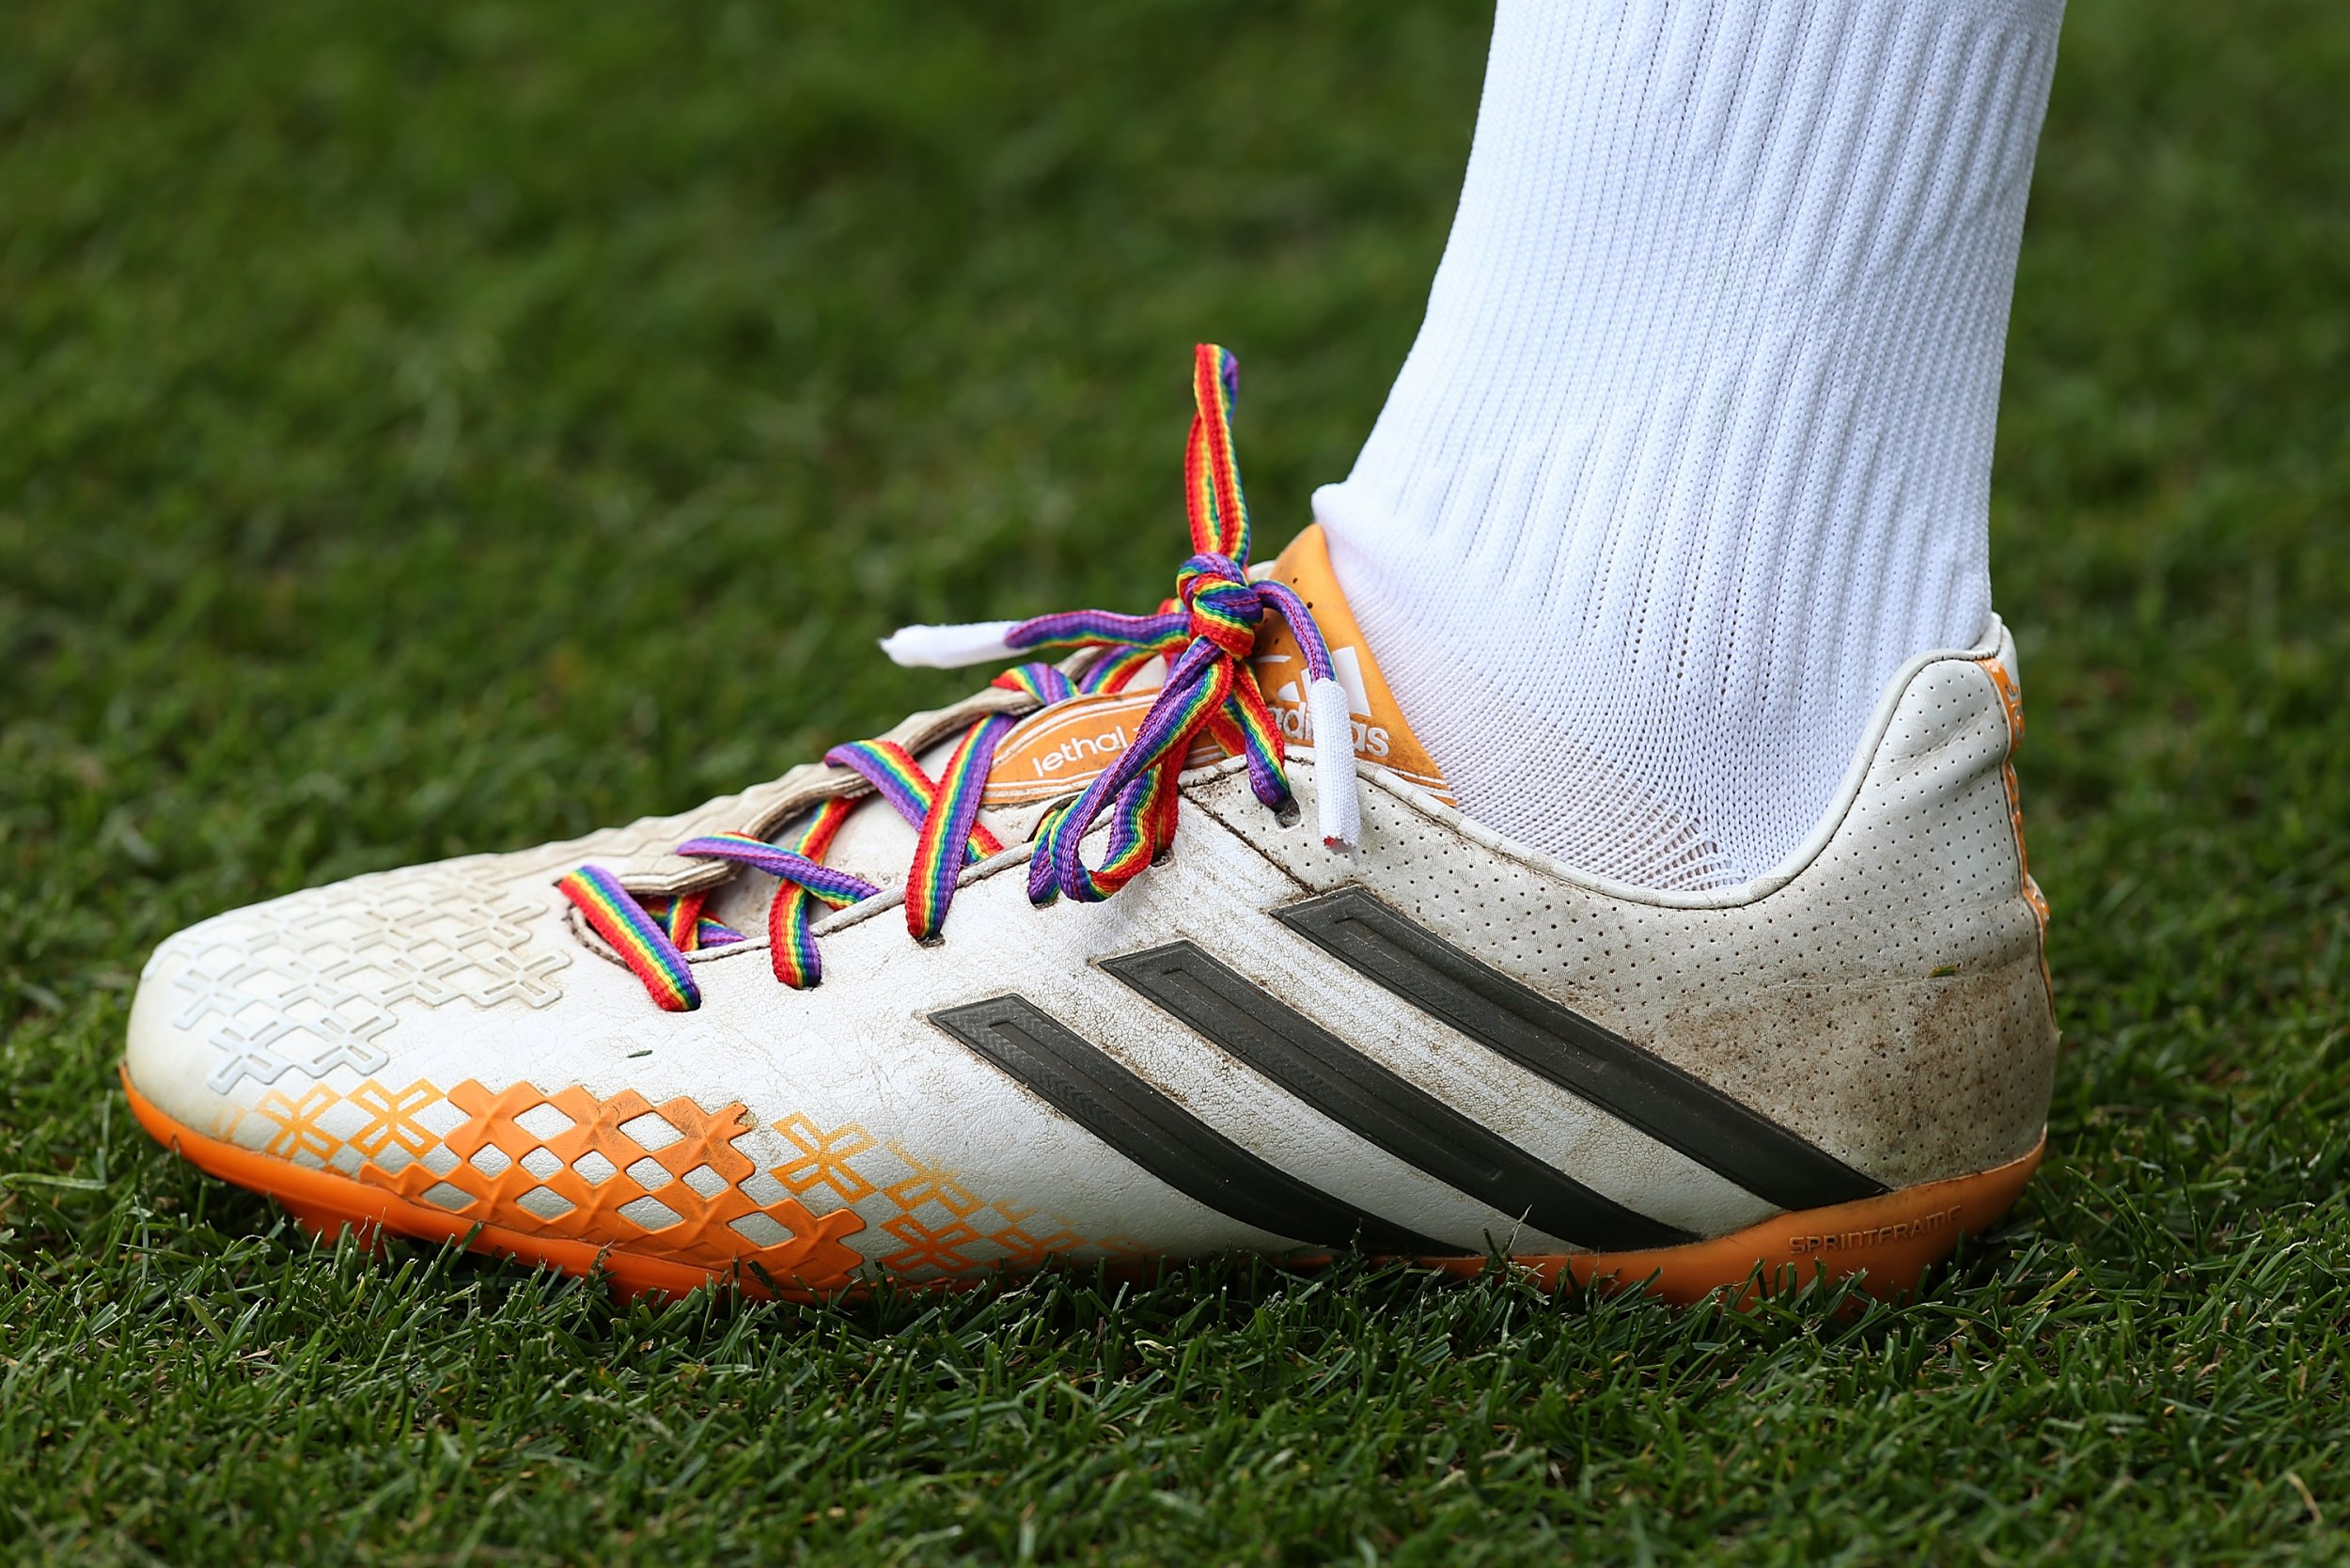 Lawson D'Ath of Northampton Town wears rainbow laces as part of a anti-homophobia campaign.